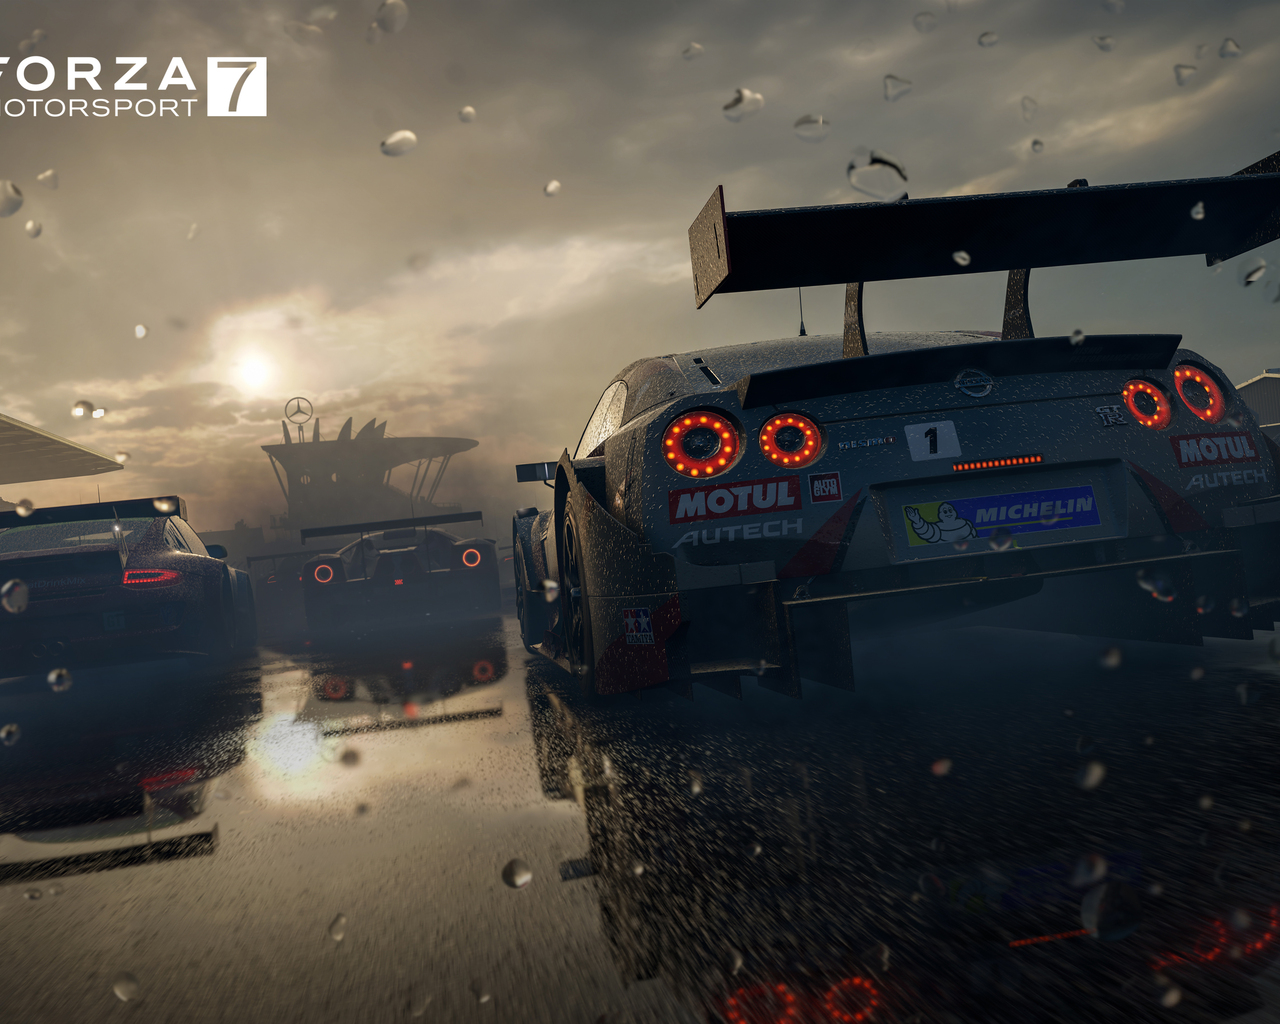 Forza Motorsport 7 Wallpapers Ultra Hd Gaming Backgrounds: 1280x1024 Forza Motorsport 7 4k 1280x1024 Resolution HD 4k